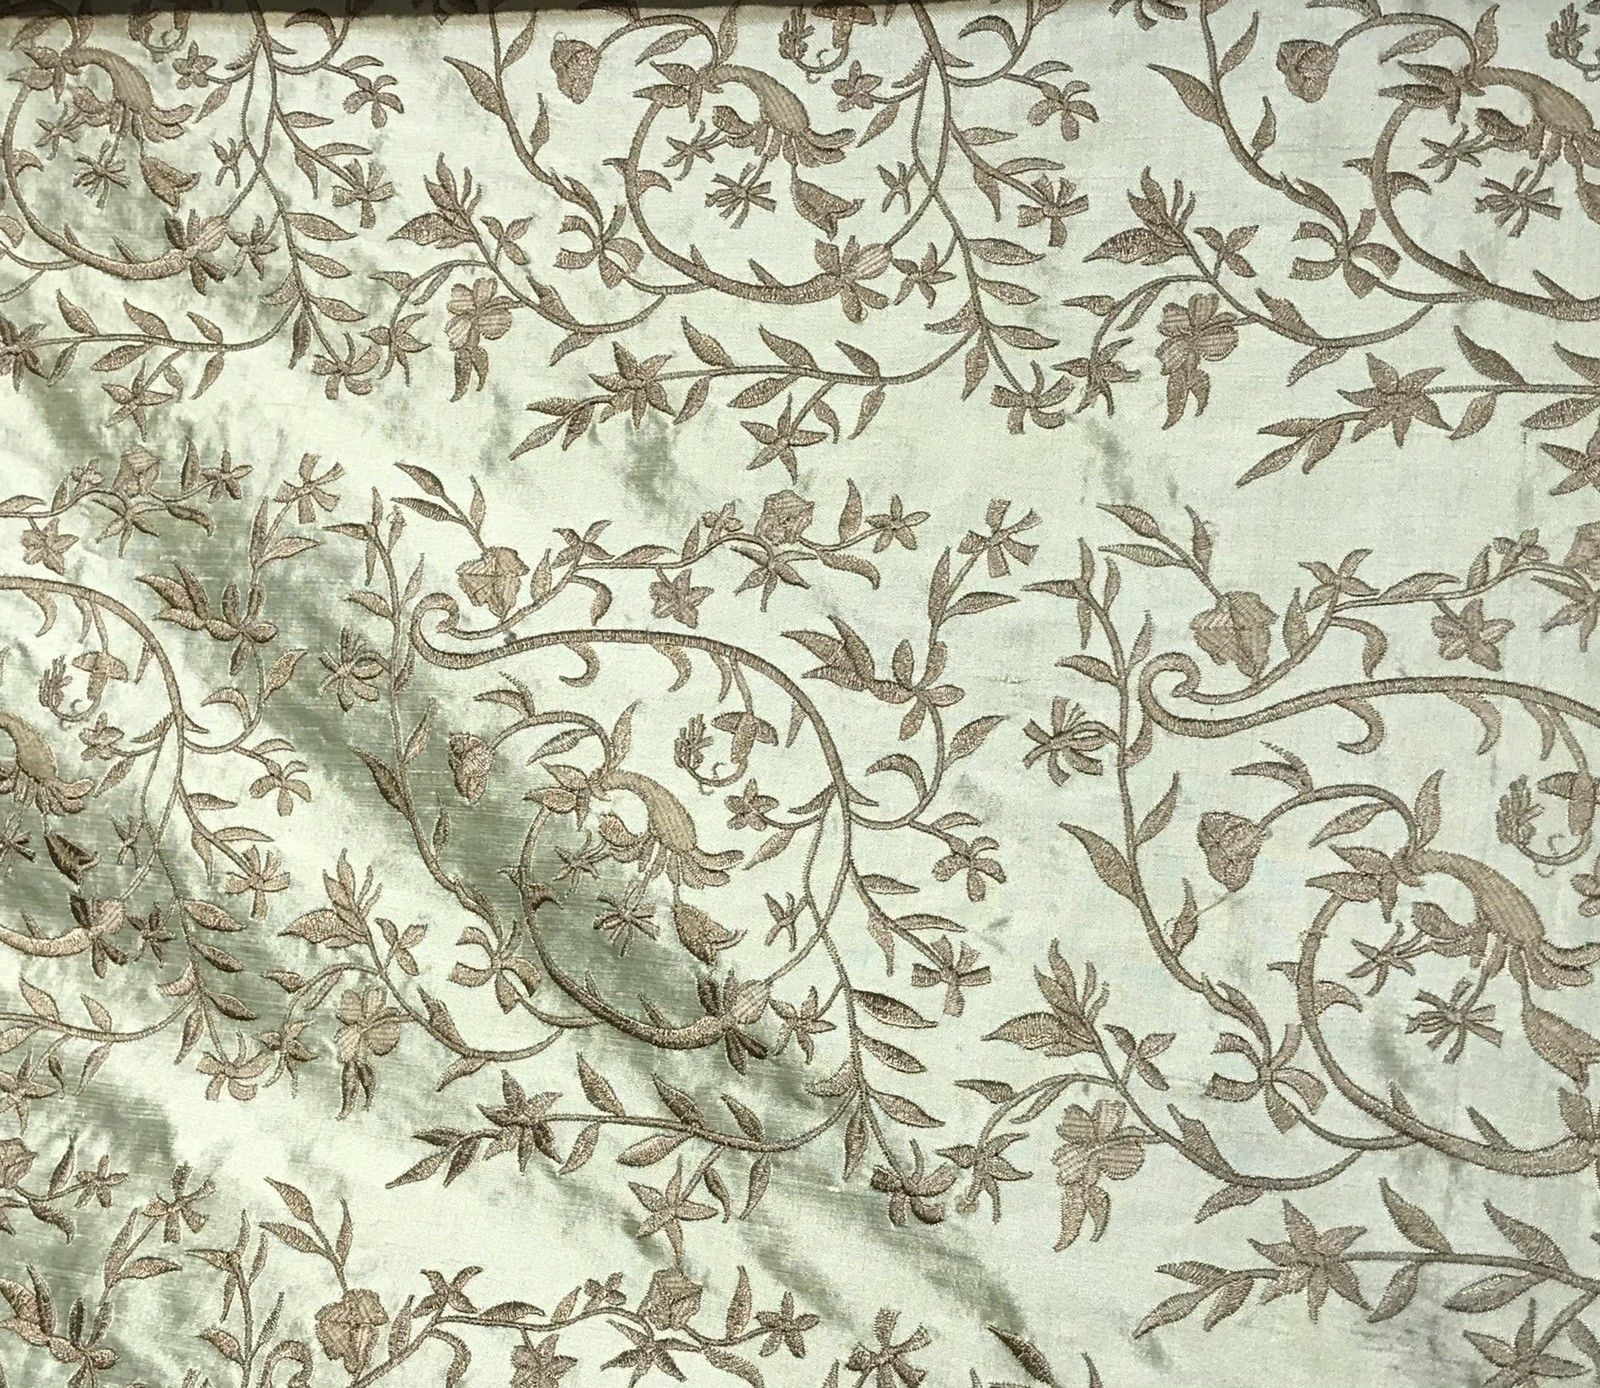 SALE! Designer 100% Silk Taffeta Dupioni Embroidery Floral Fabric - Mint Green - Fancy Styles Fabric Boutique